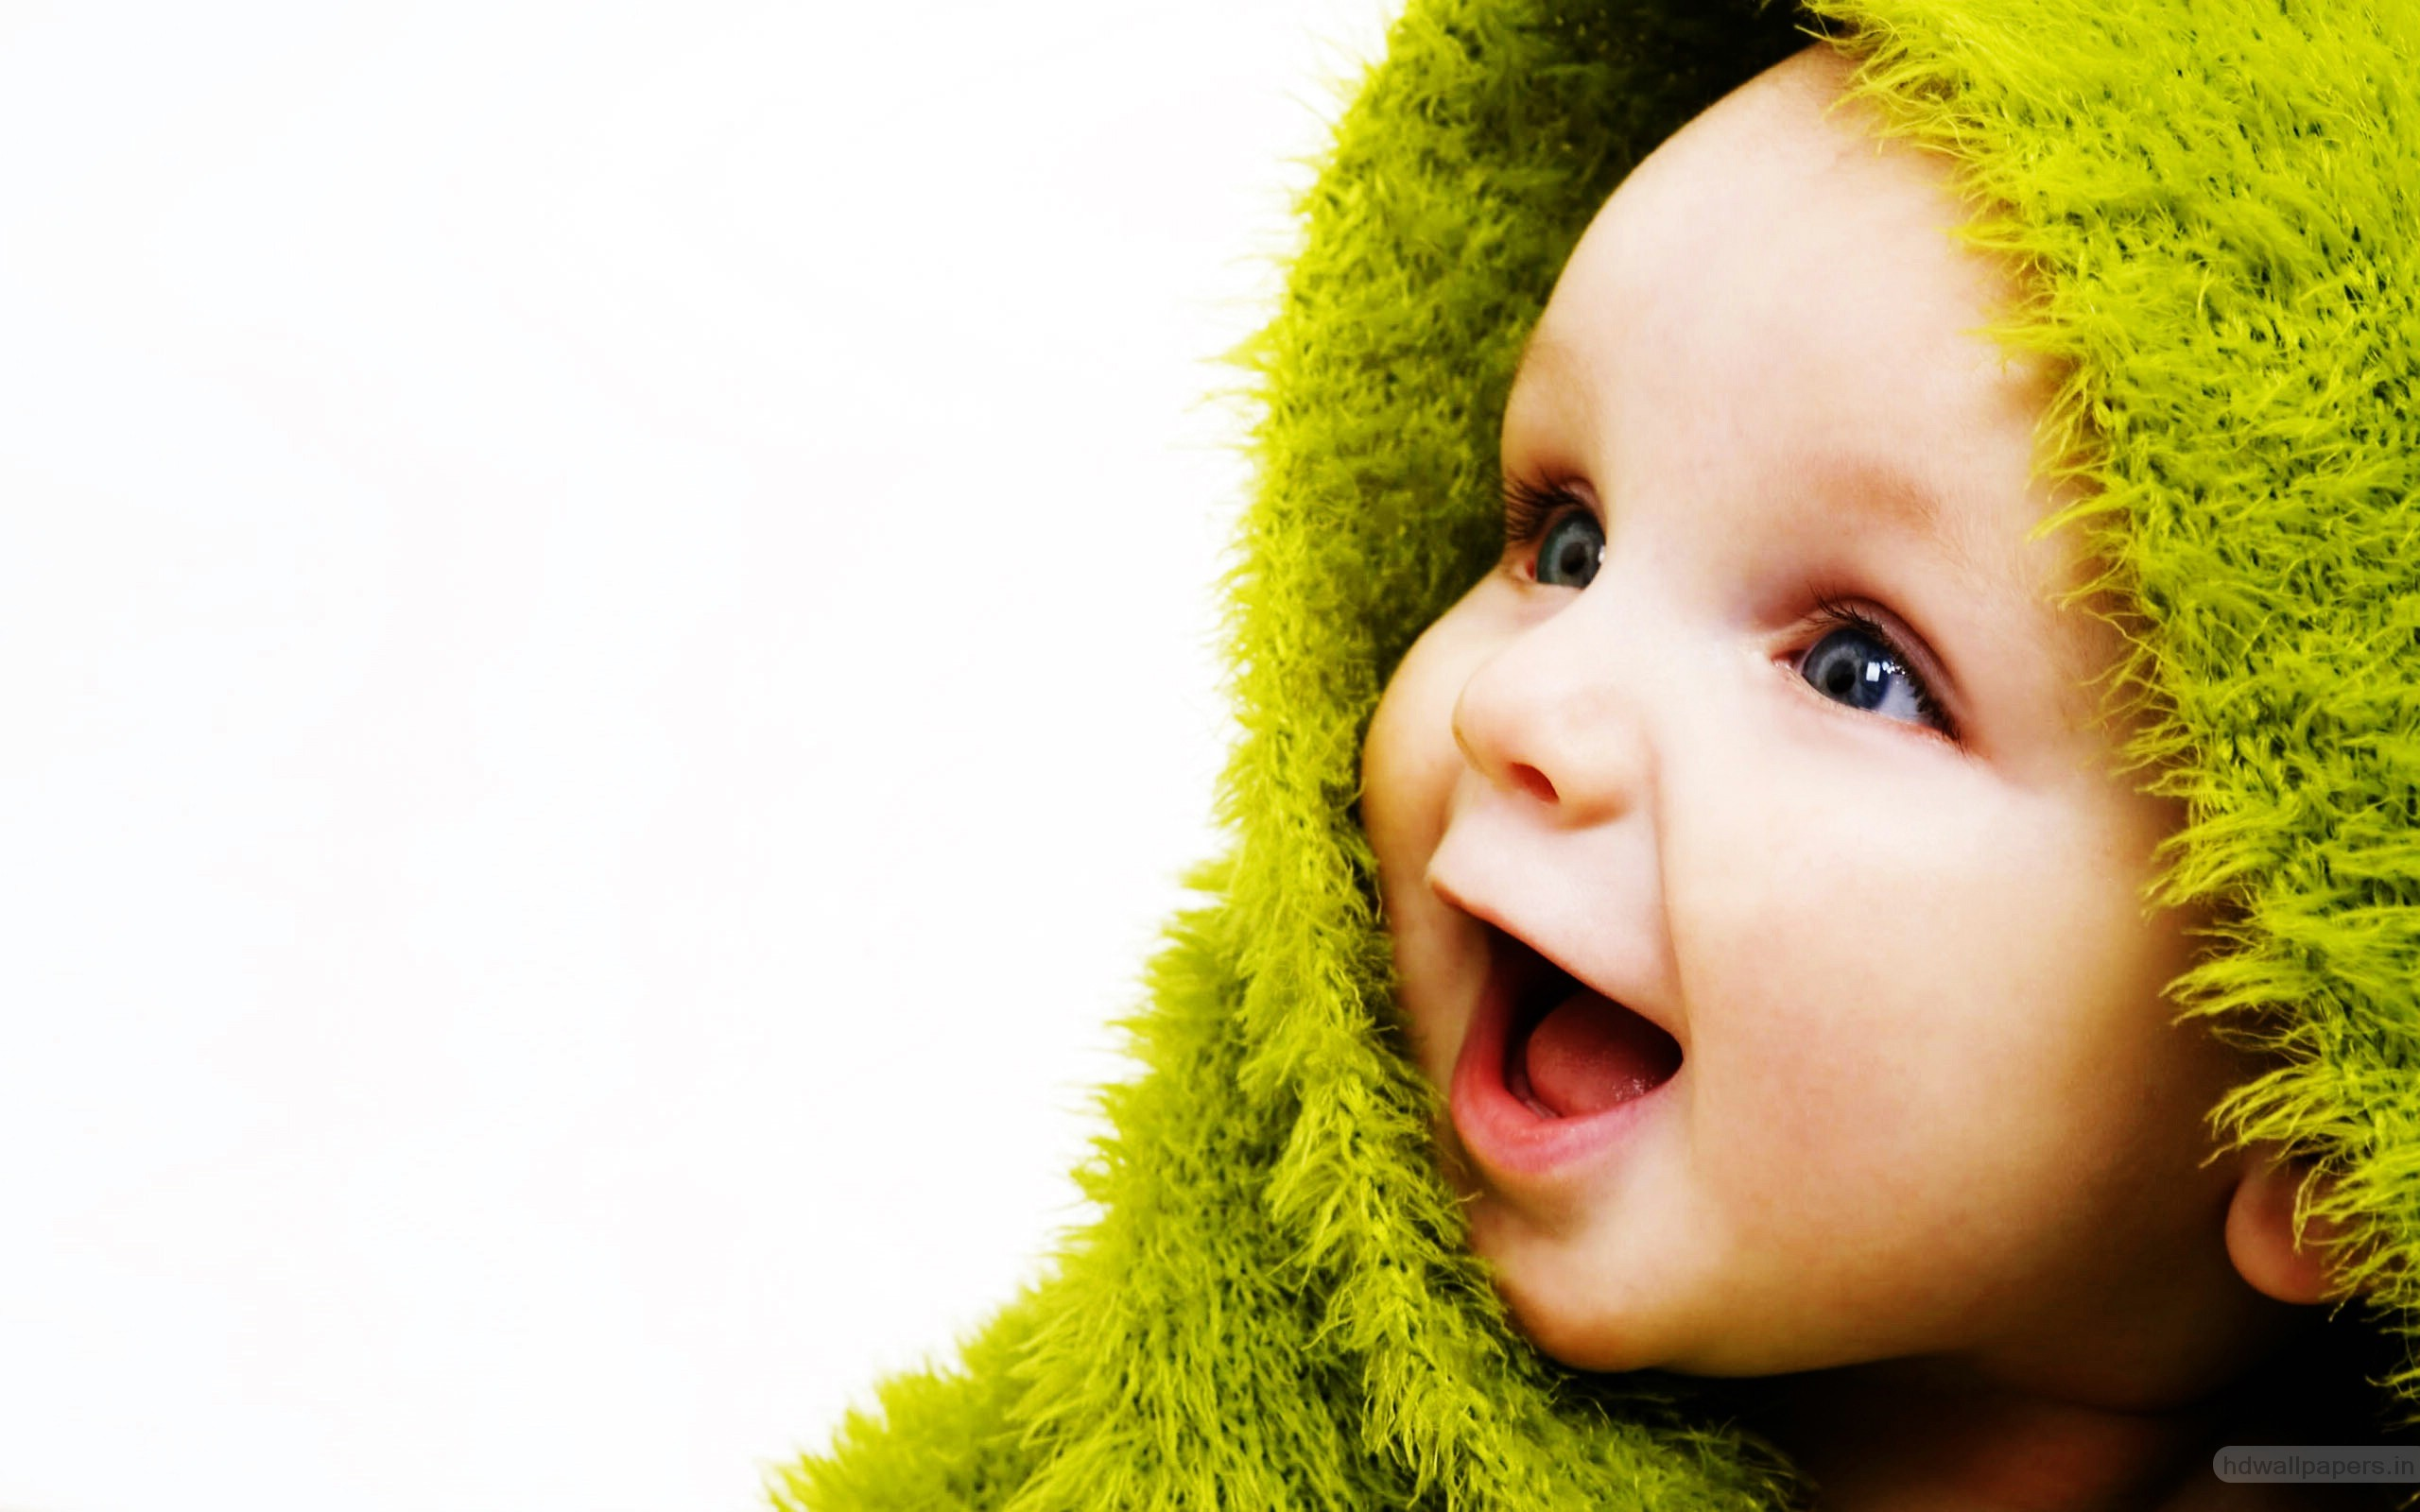 Cute Small Baby with Smile in Green Wallpapers HD Wallpapers 2560x1600